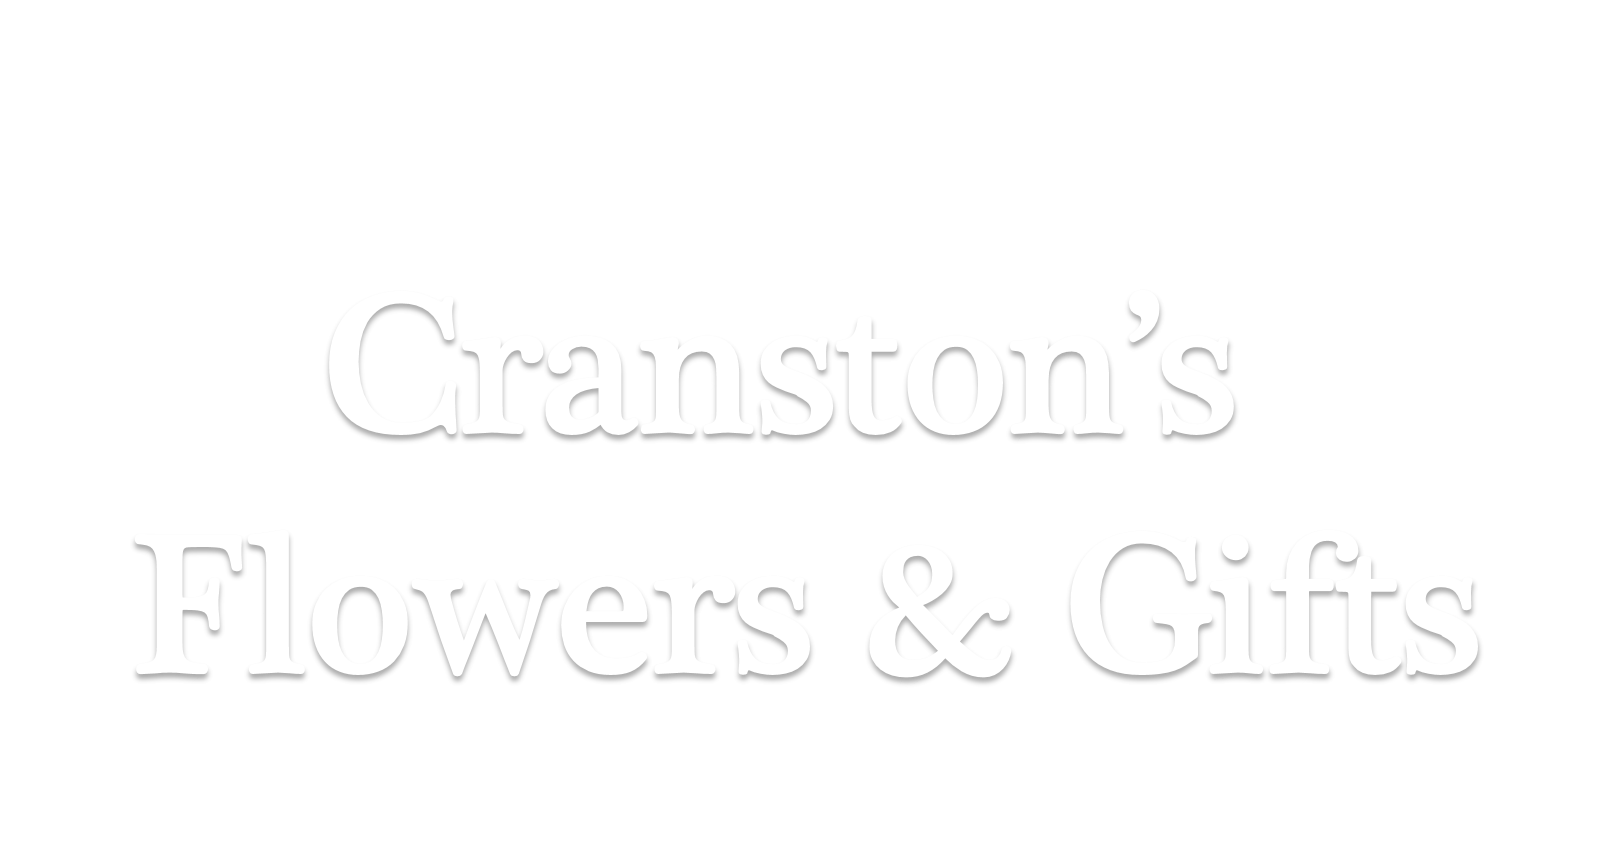 greenville florist flower delivery by cranston s flowers gifts cranston s flowers gifts